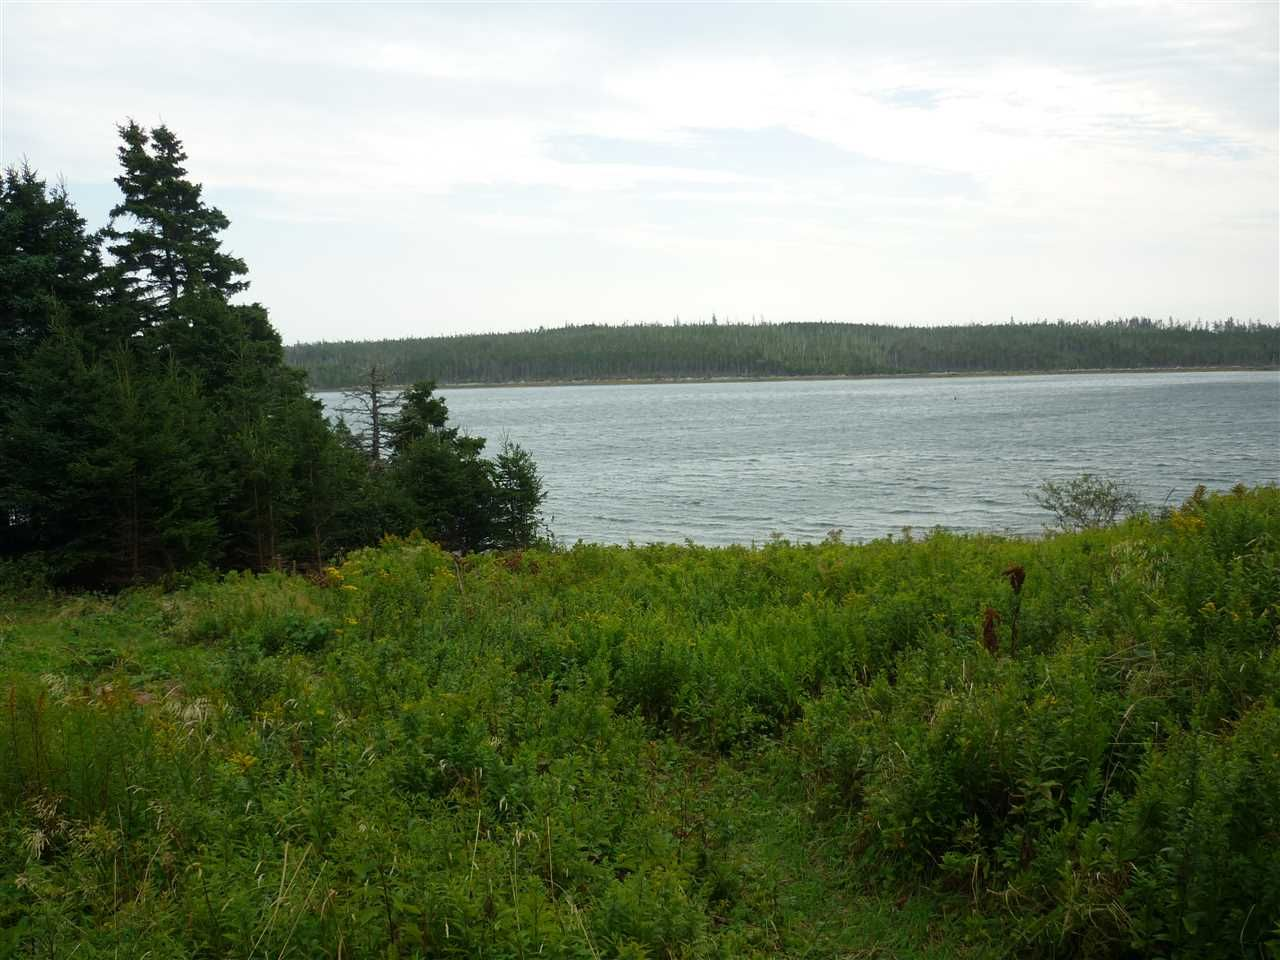 Main Photo: - Little Liscomb Road in Little Liscomb: 303-Guysborough County Vacant Land for sale (Highland Region)  : MLS®# 201728127